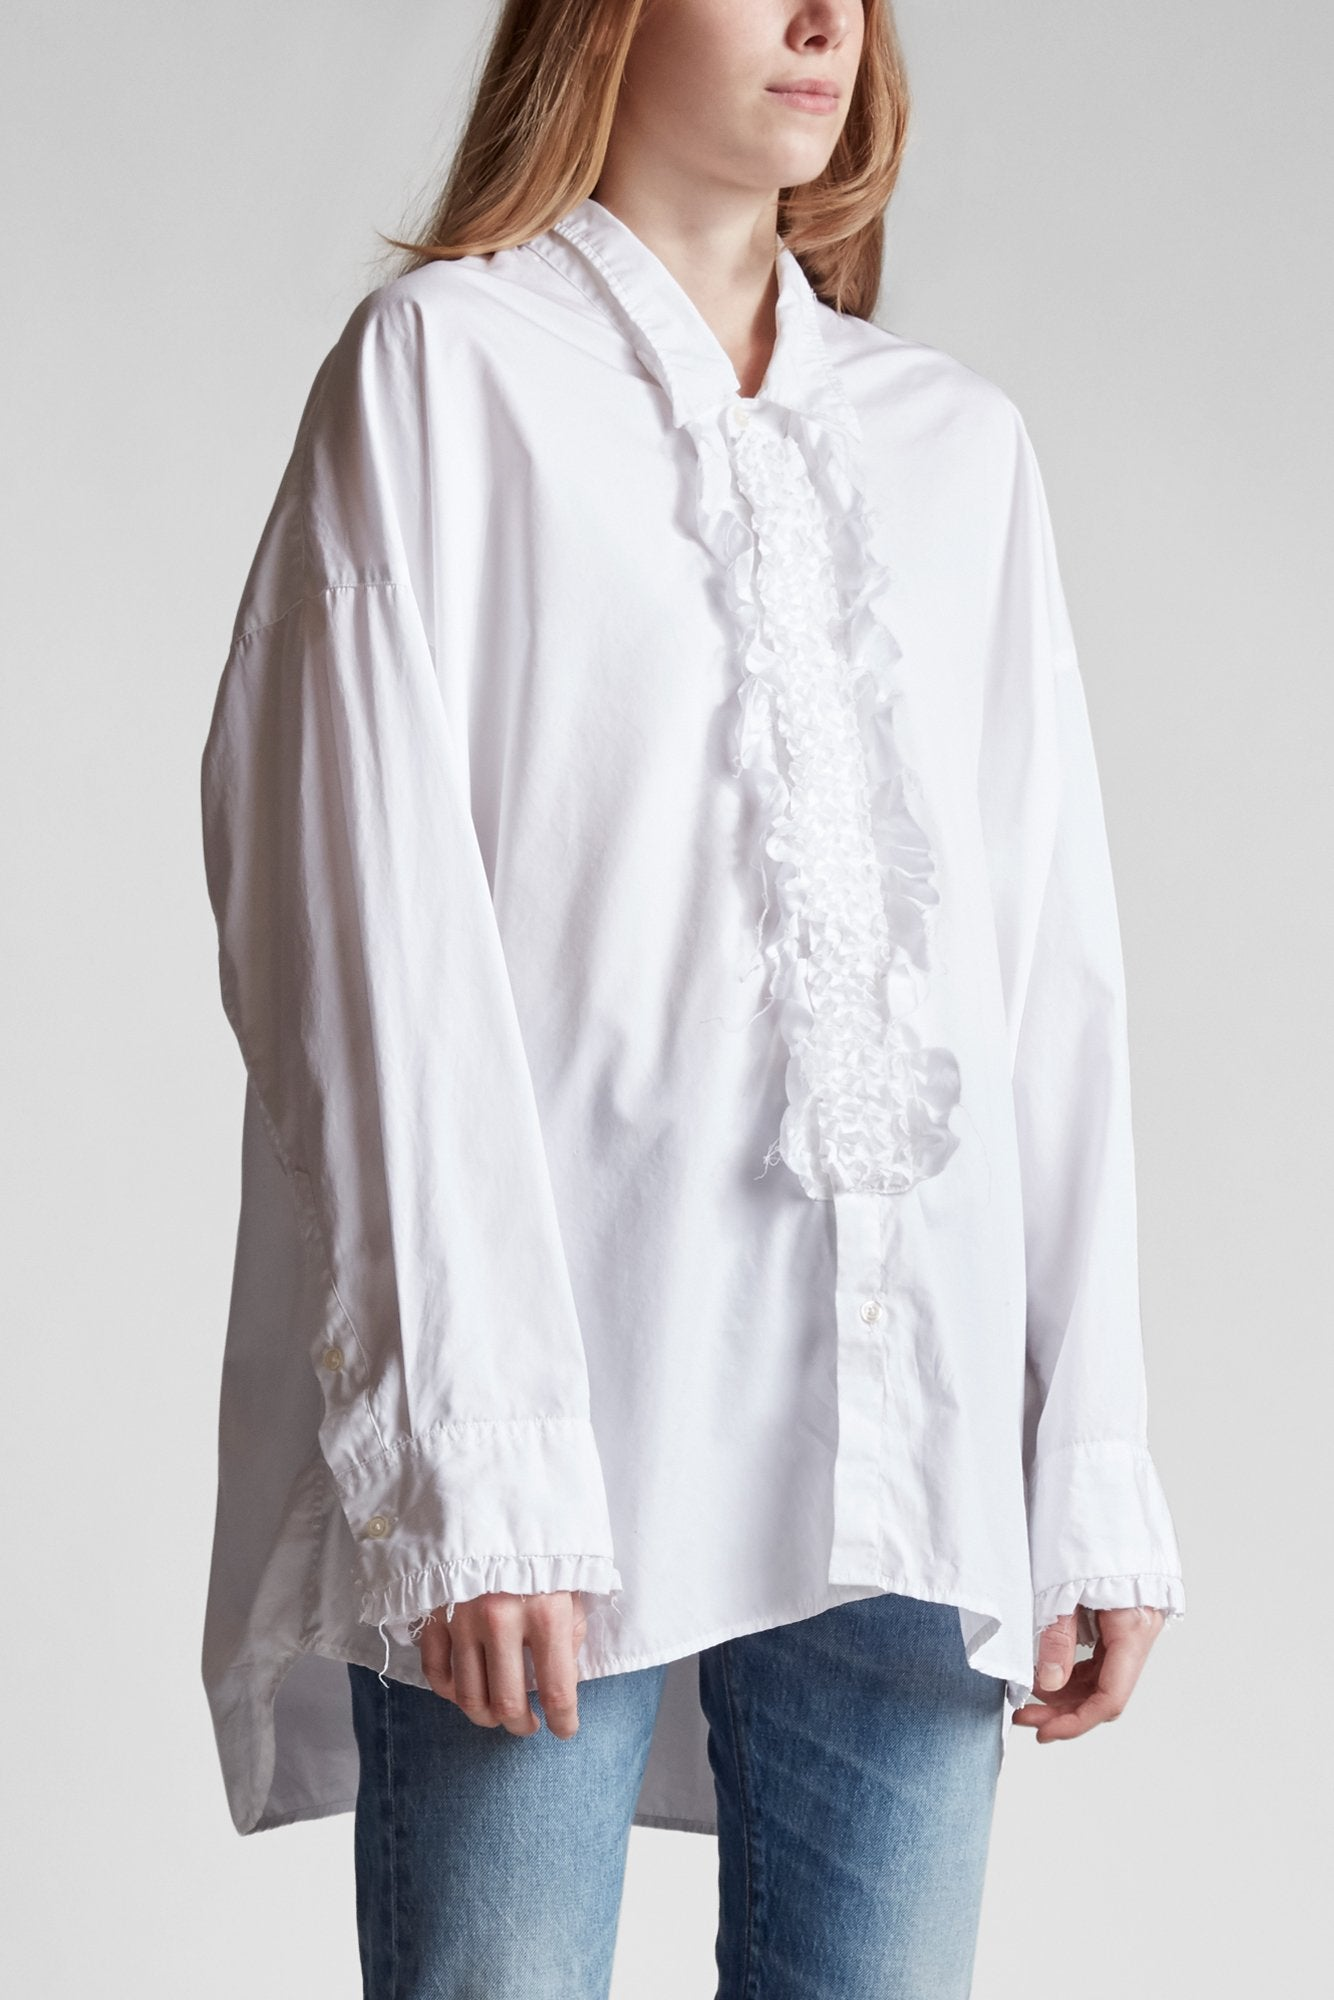 Drop Neck Tuxedo Shirt - White